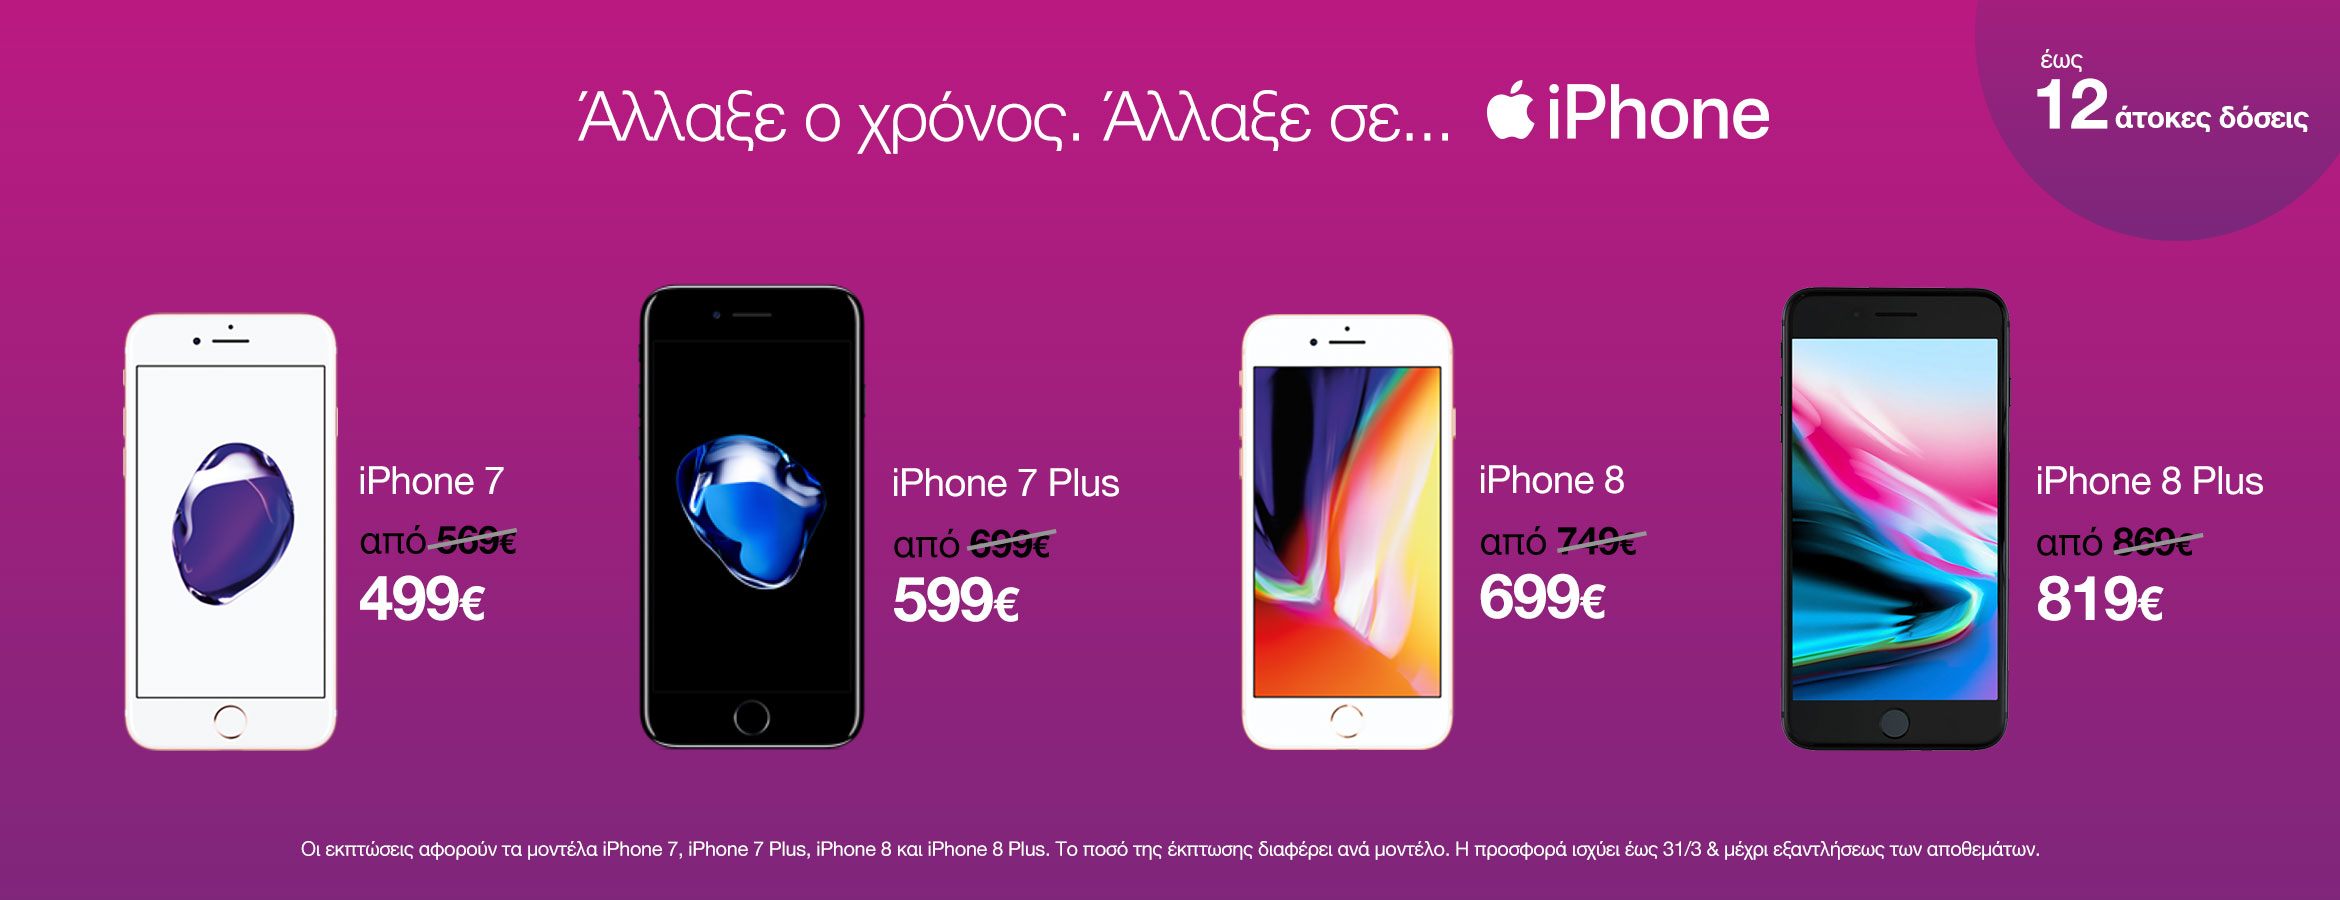 allakseseiphone_banner_2